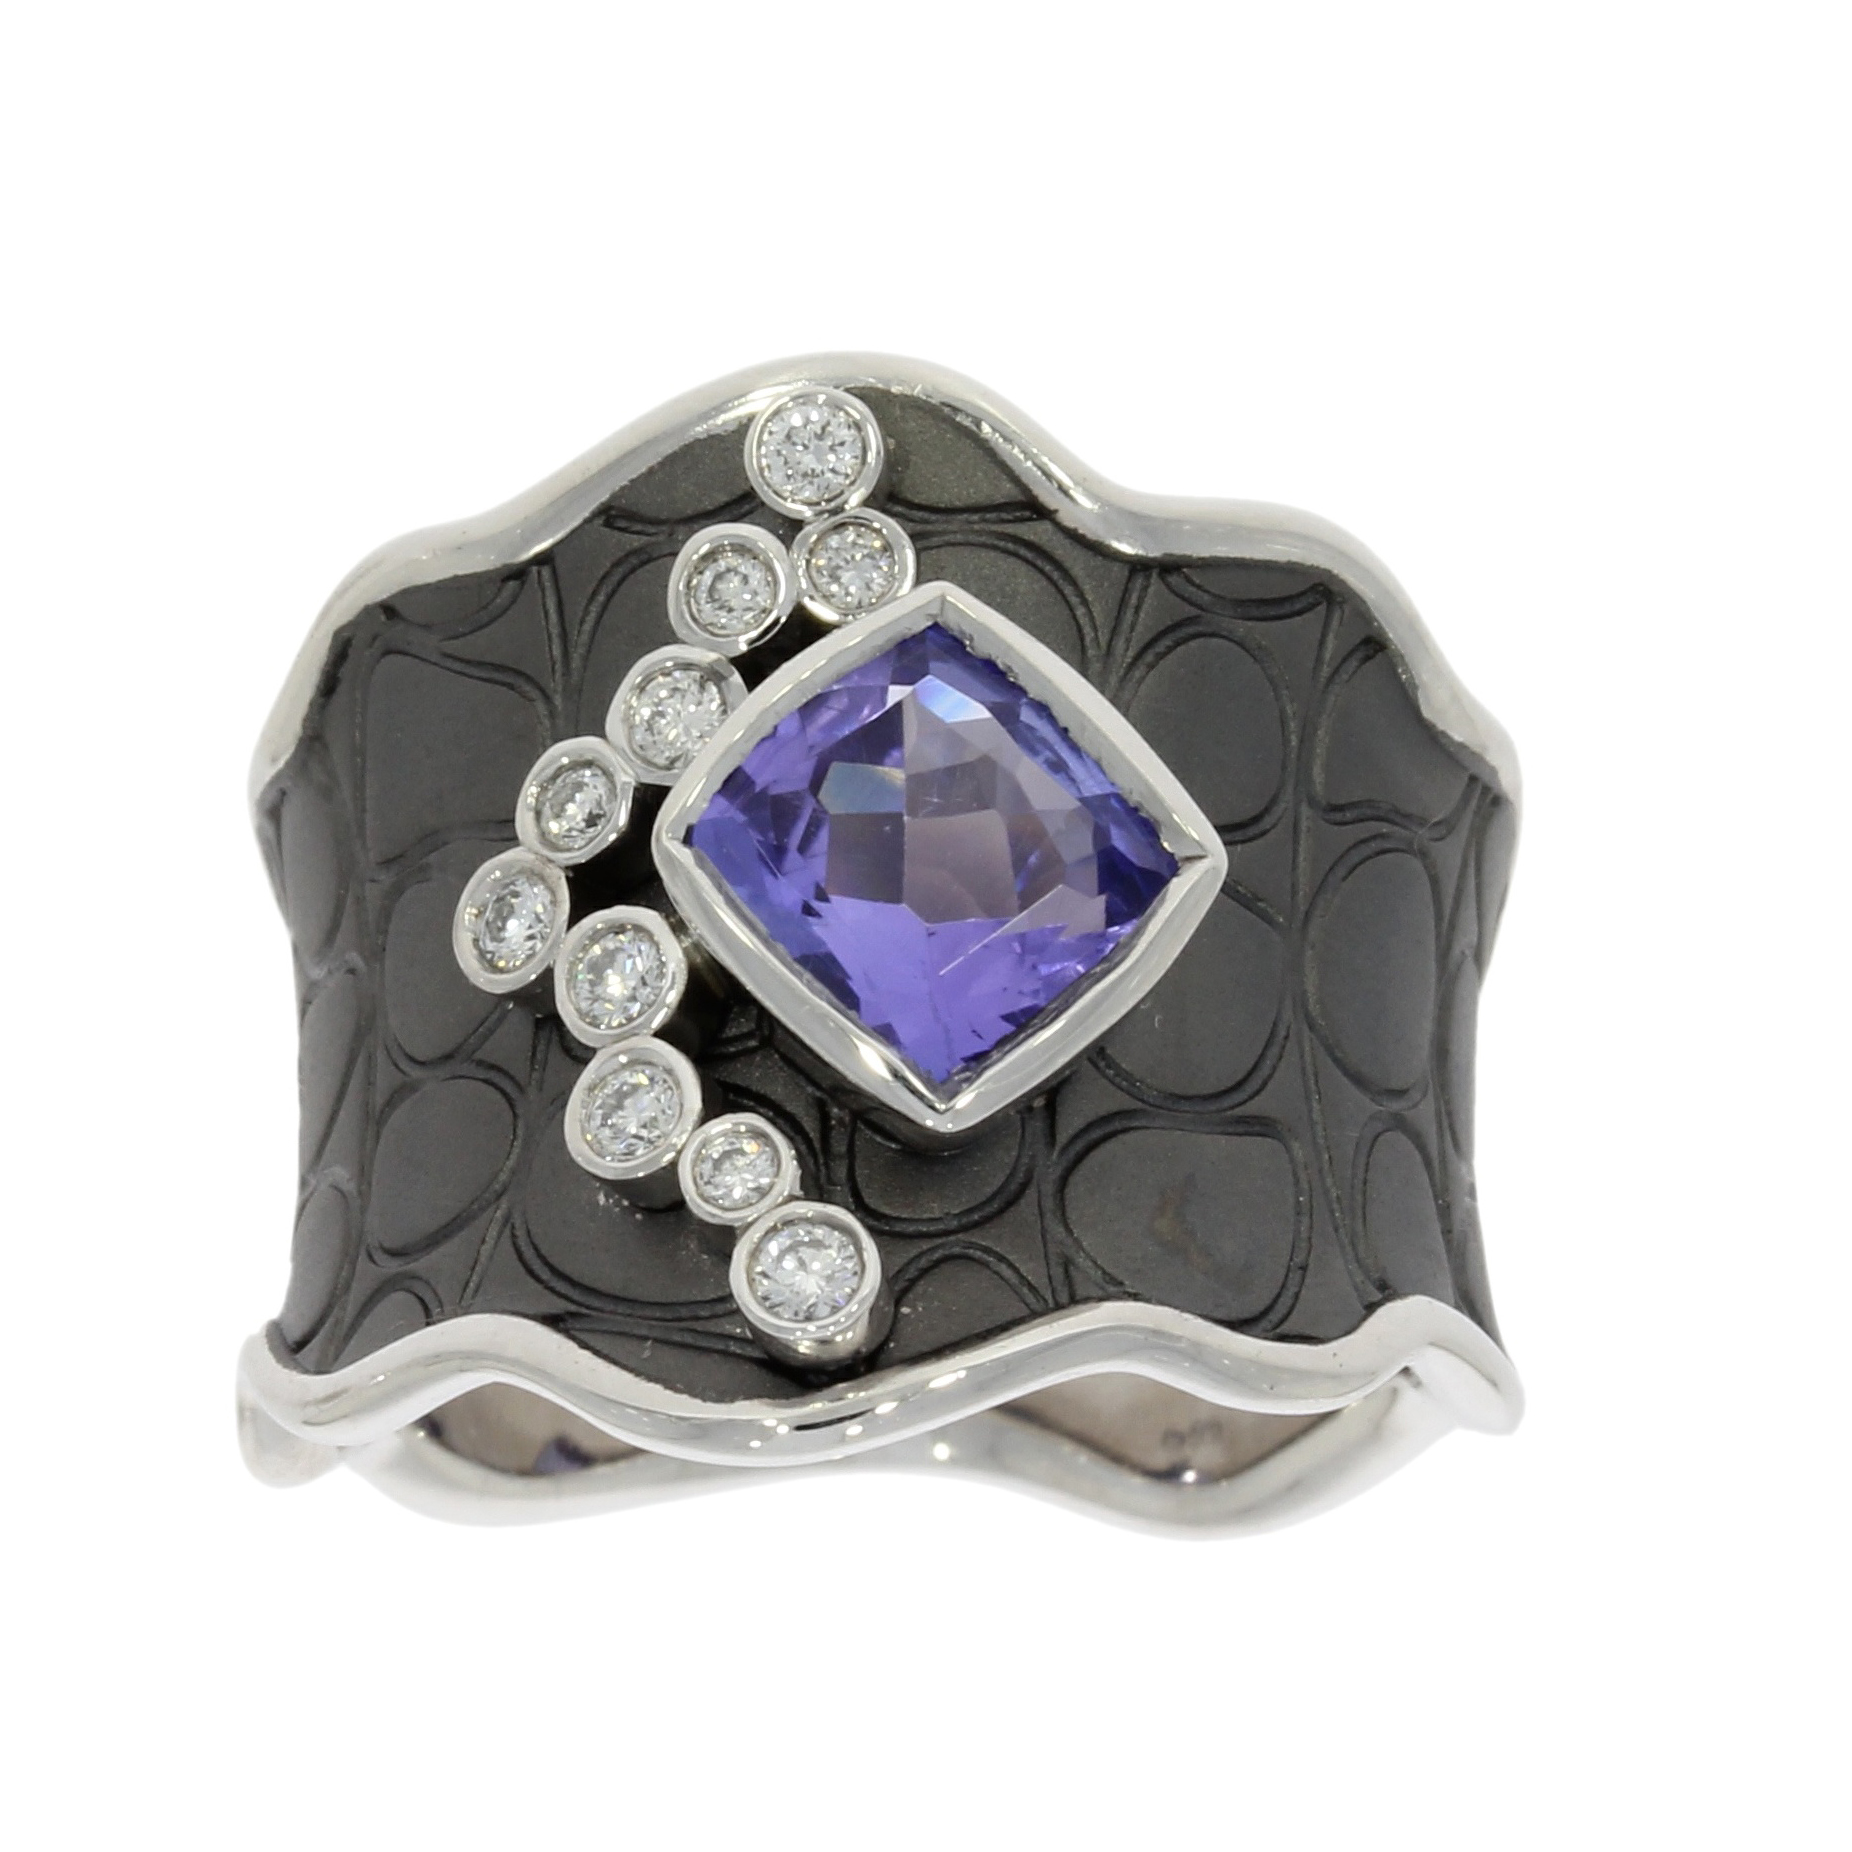 18ct white tanzanite and diamond dress ring with black rhodium.